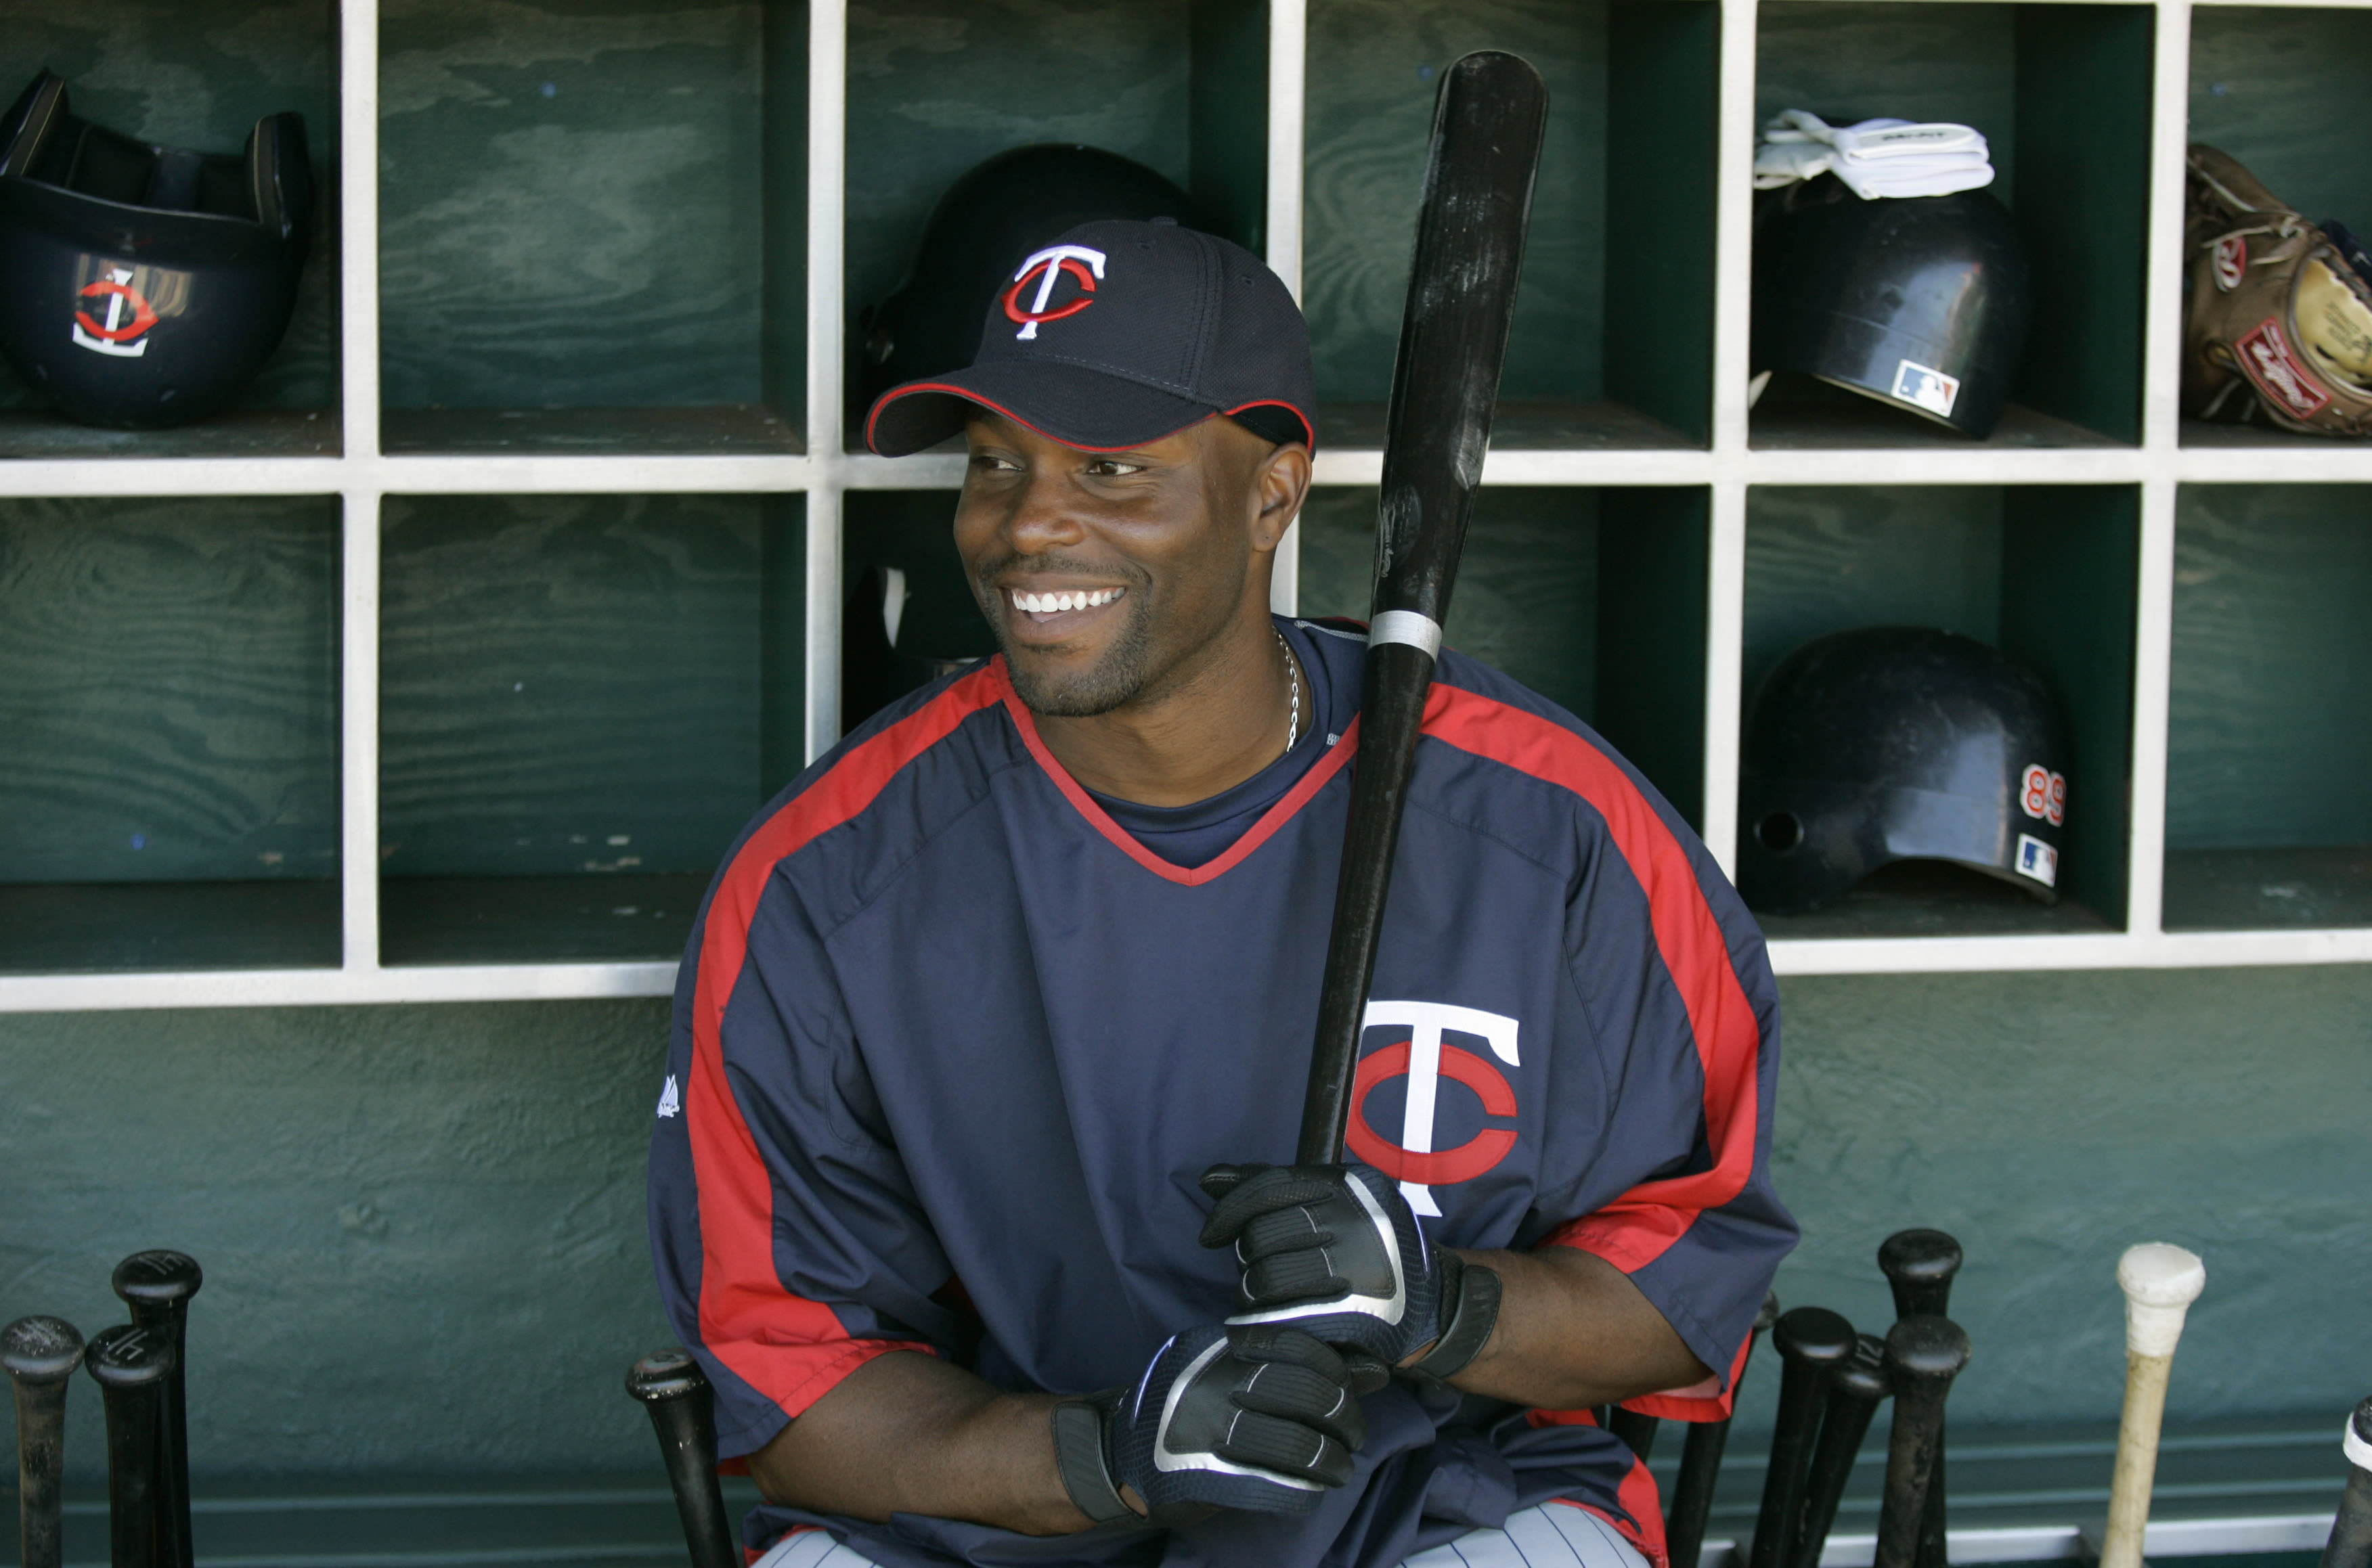 Minnesota Twins center fielder Torii Hunter poses for a photograph in the Twins dugout before the Twins faced the Philadelphia Phillies in their spring training baseball game in Clearwater, Fla., Sunday, March 25, 2007. (AP Photo/Kathy Willens)